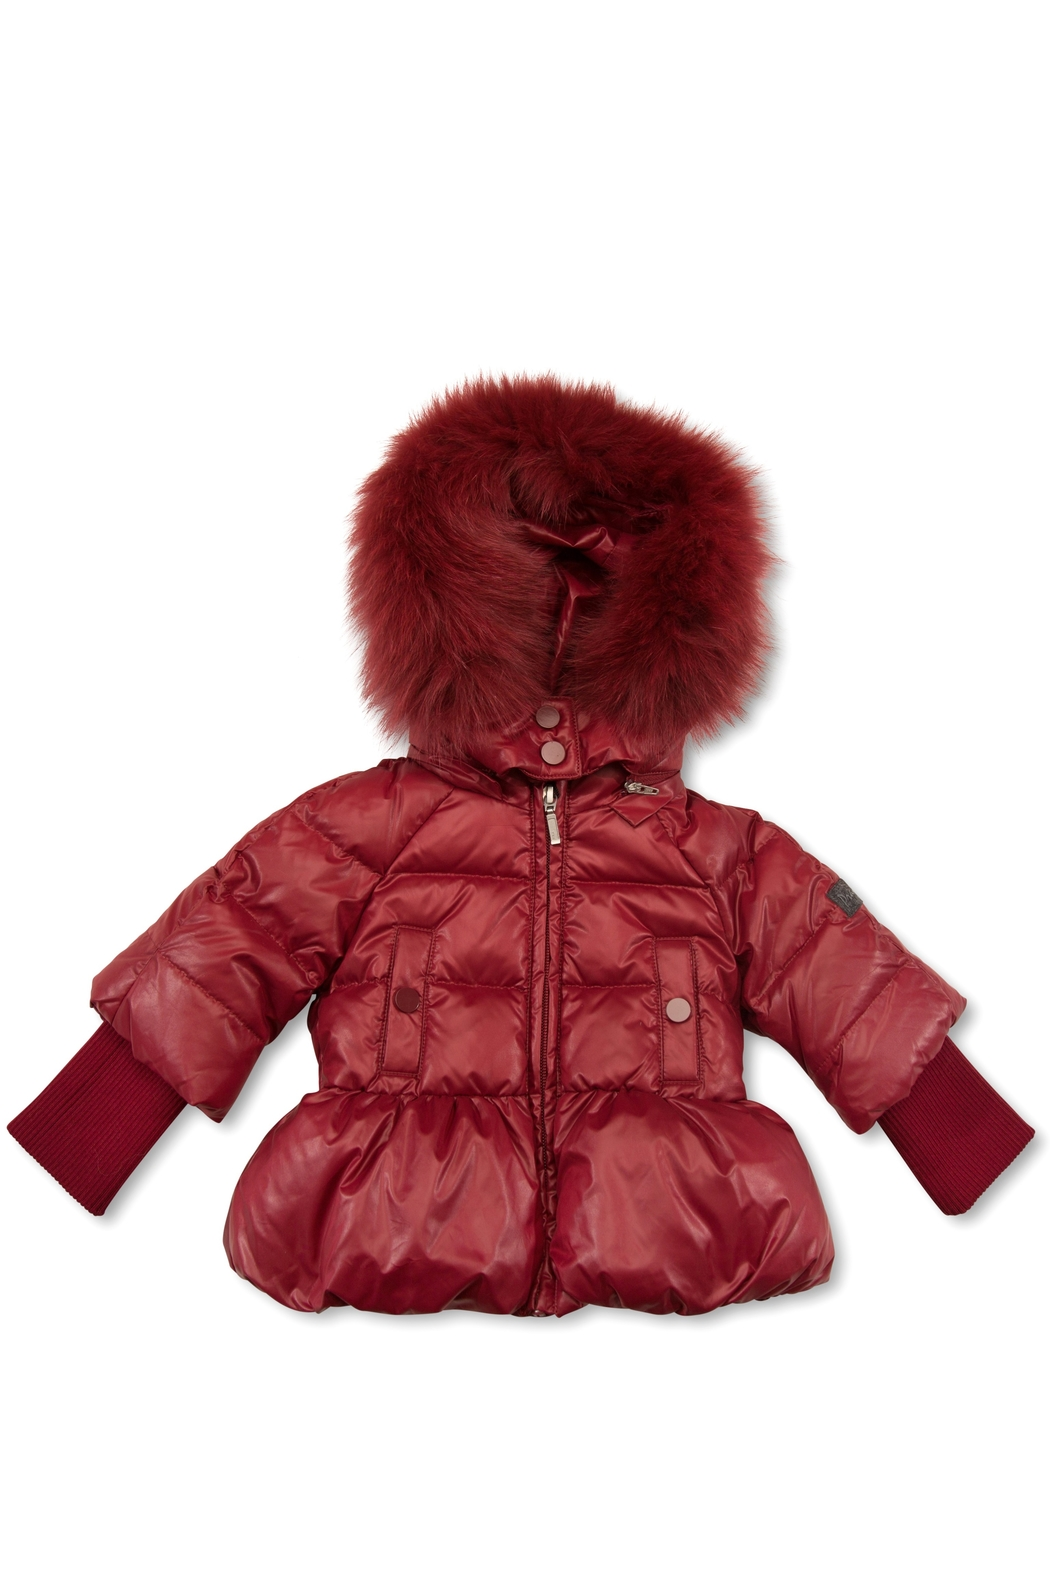 PRAMIE Pramie Down Filled Pouf Jacket with Detachable Fur for Girls | Winterwear Clothes - Front Cropped Image